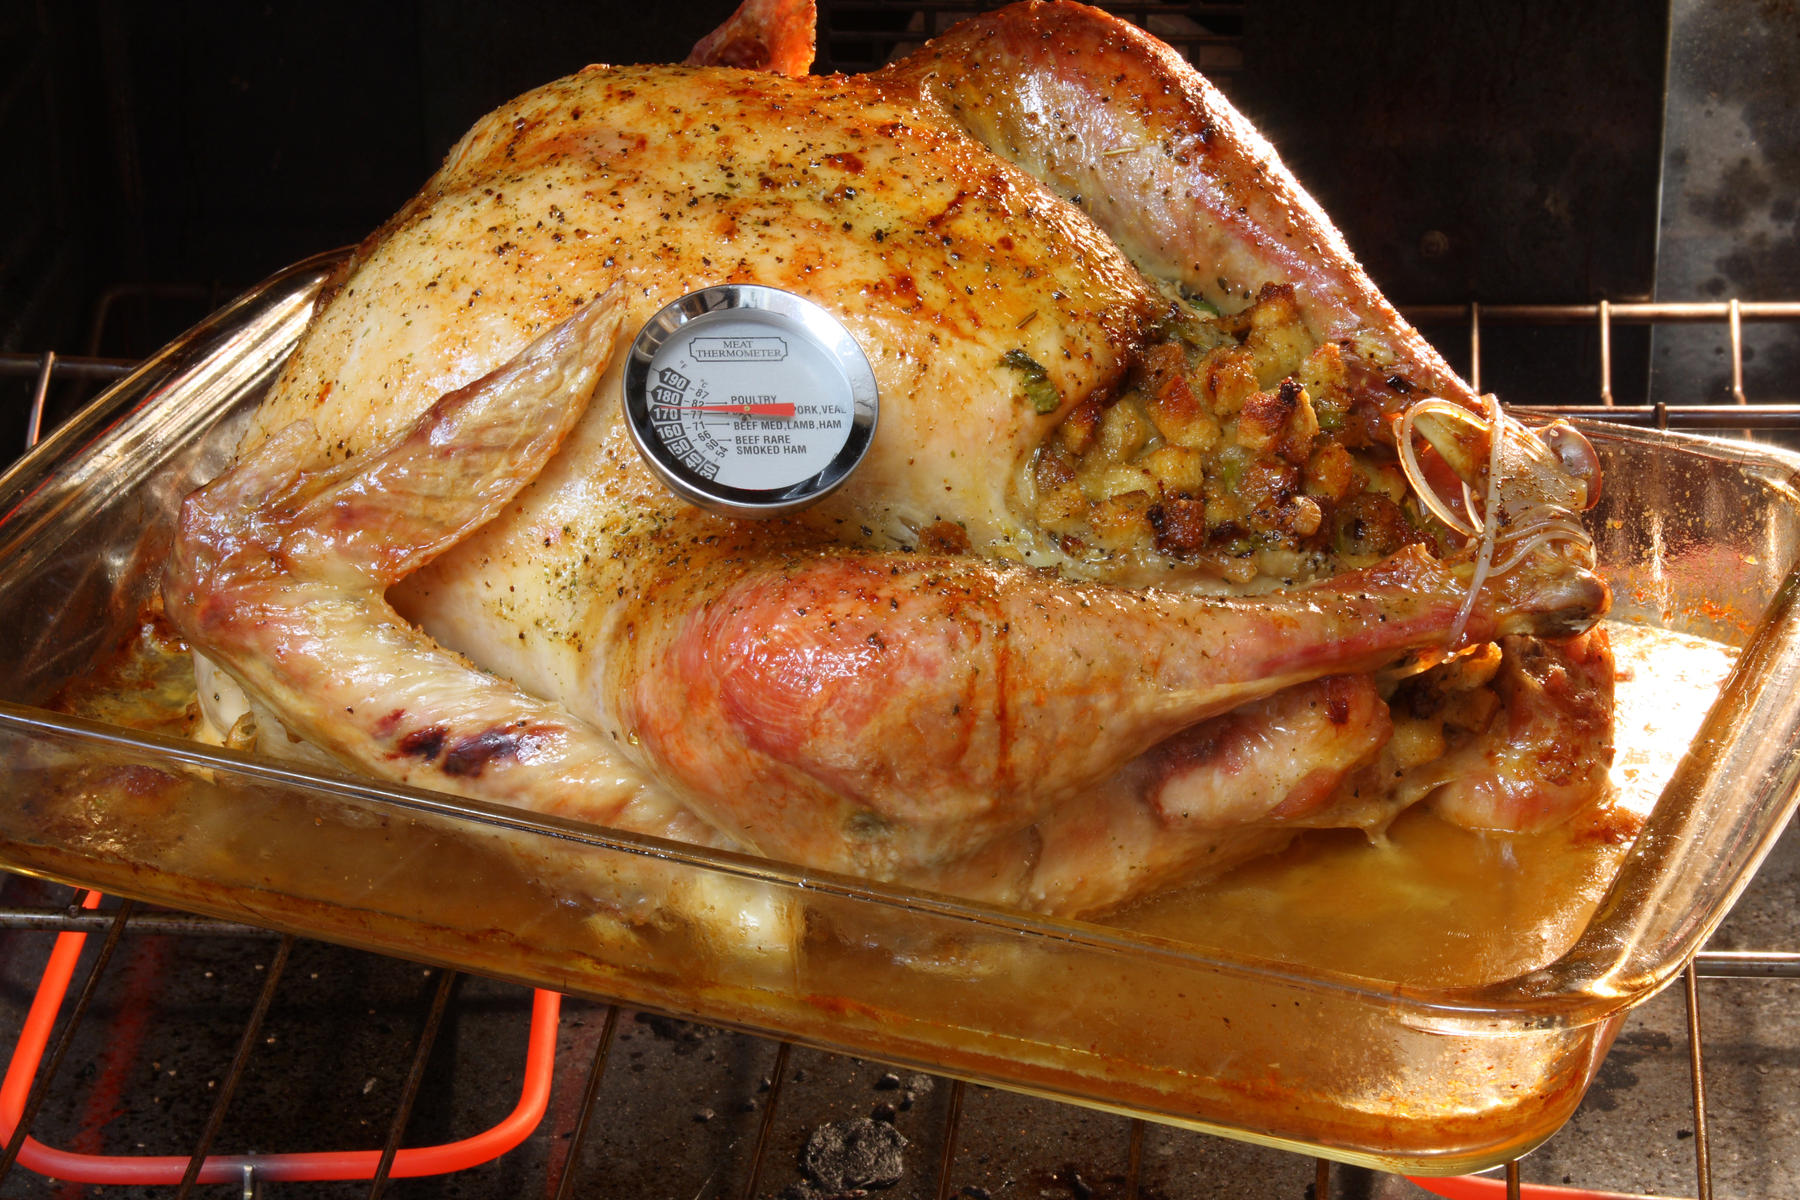 Turkey in Oven with Thermometer